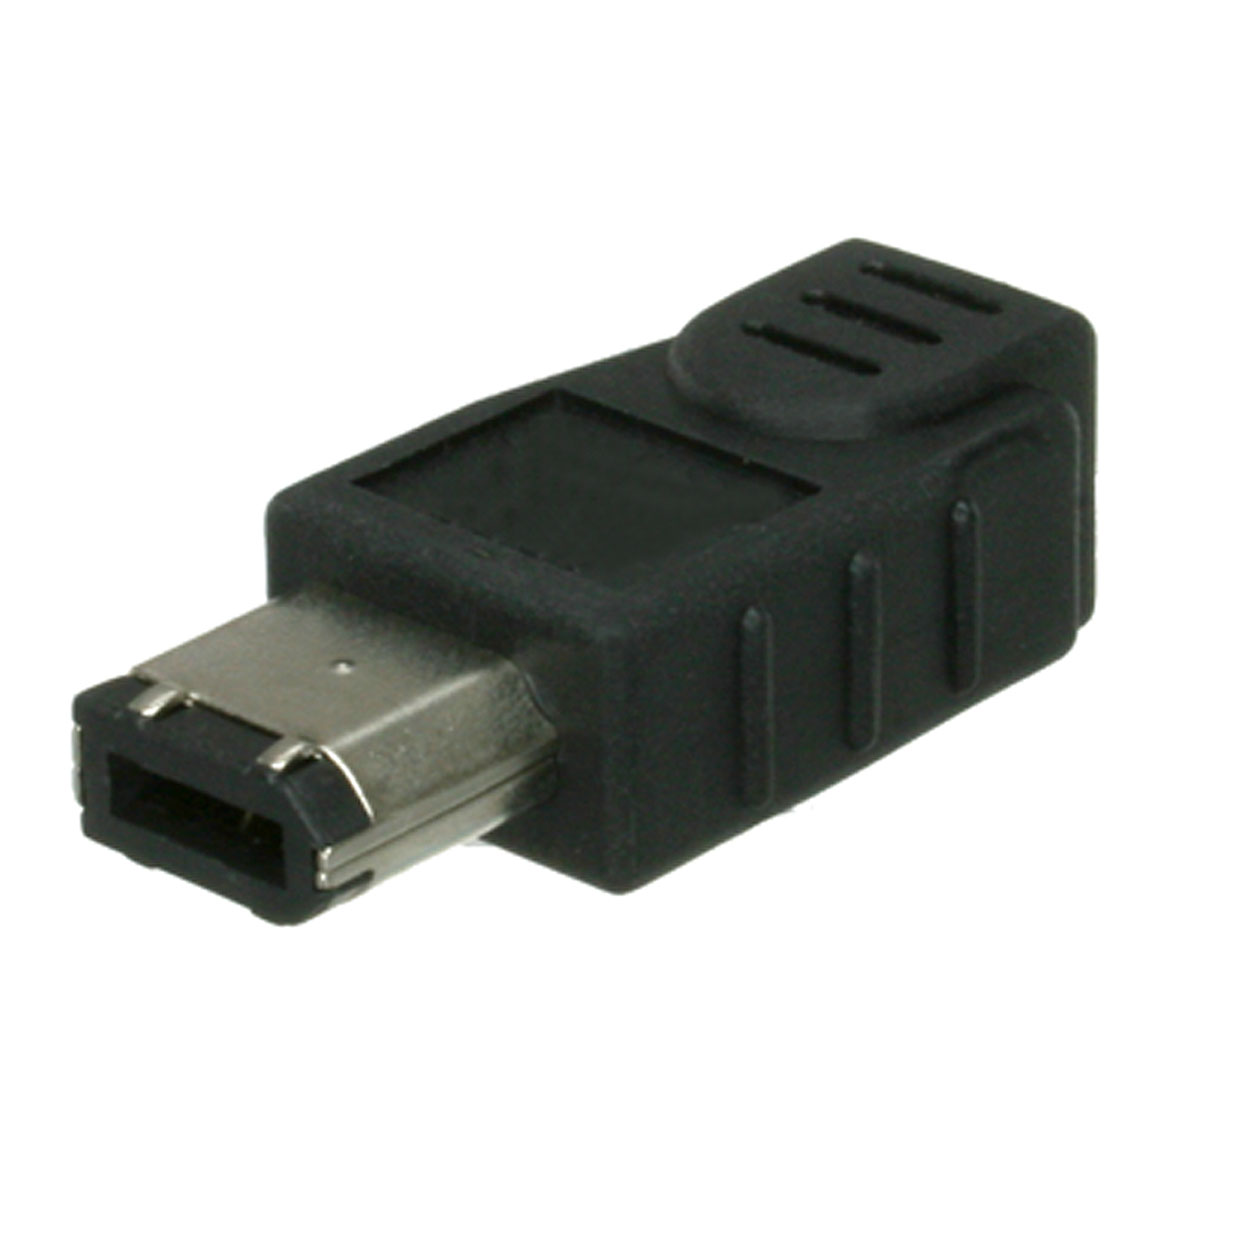 IEEE-1394a 6p Plug to 4p Socket Firewire Adapter / Gender Changer